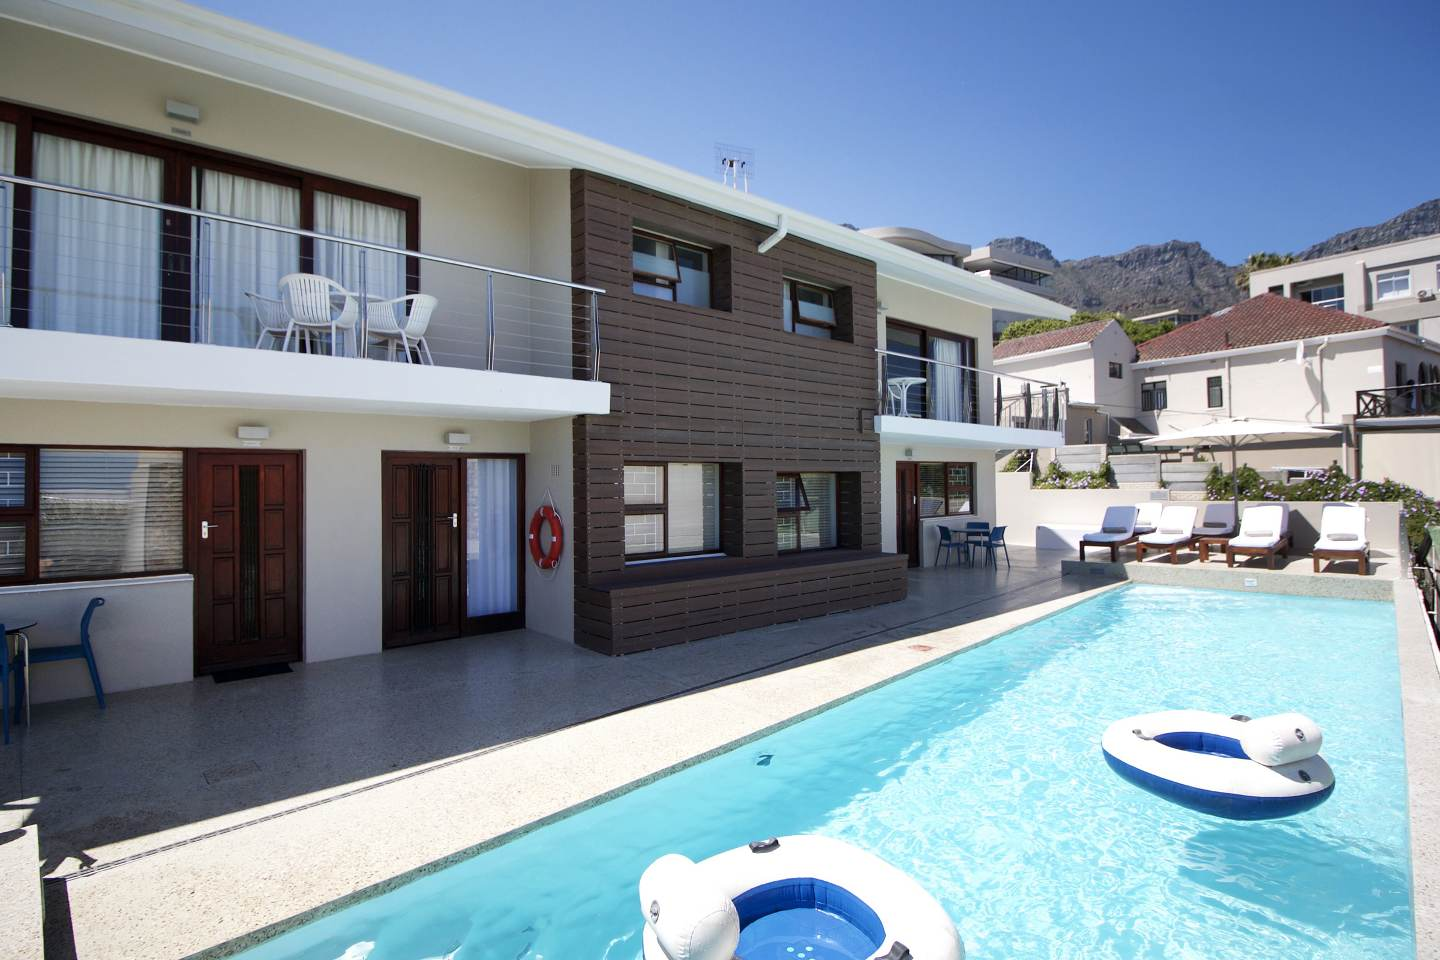 Camps bay village cape town south africa for Apartment plans south africa